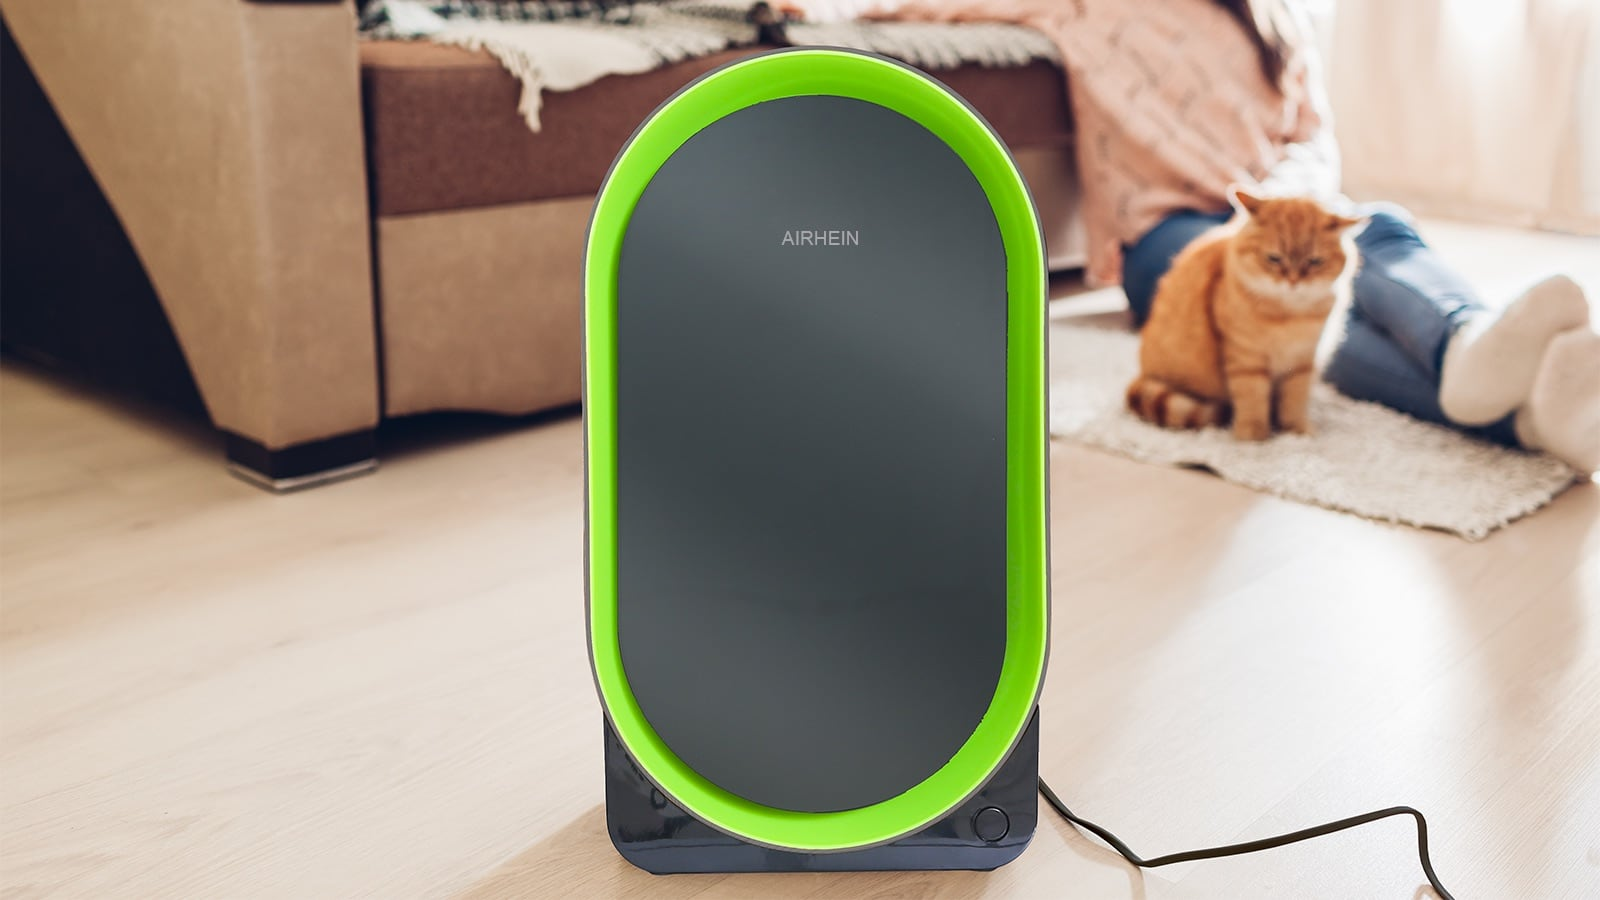 AirHein Minimalist 6-in-1 Air Purifier removes 99% of pollutants and pathogens from your air